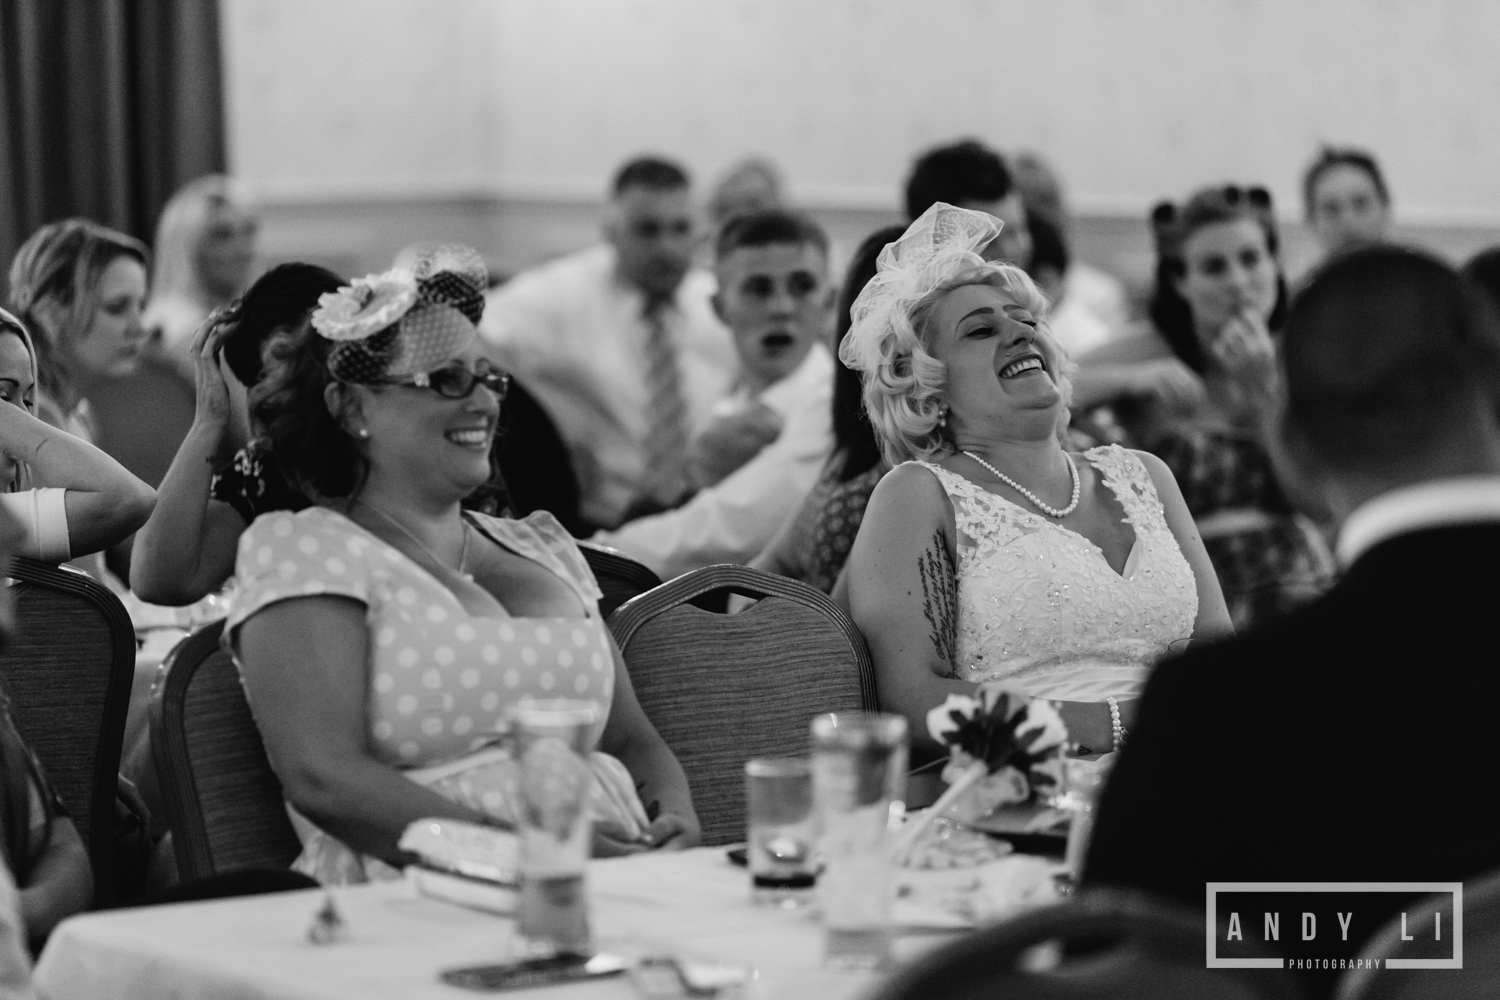 Blists Hill Ironbridge Wedding Photography-Andy Li Photography-559.jpg